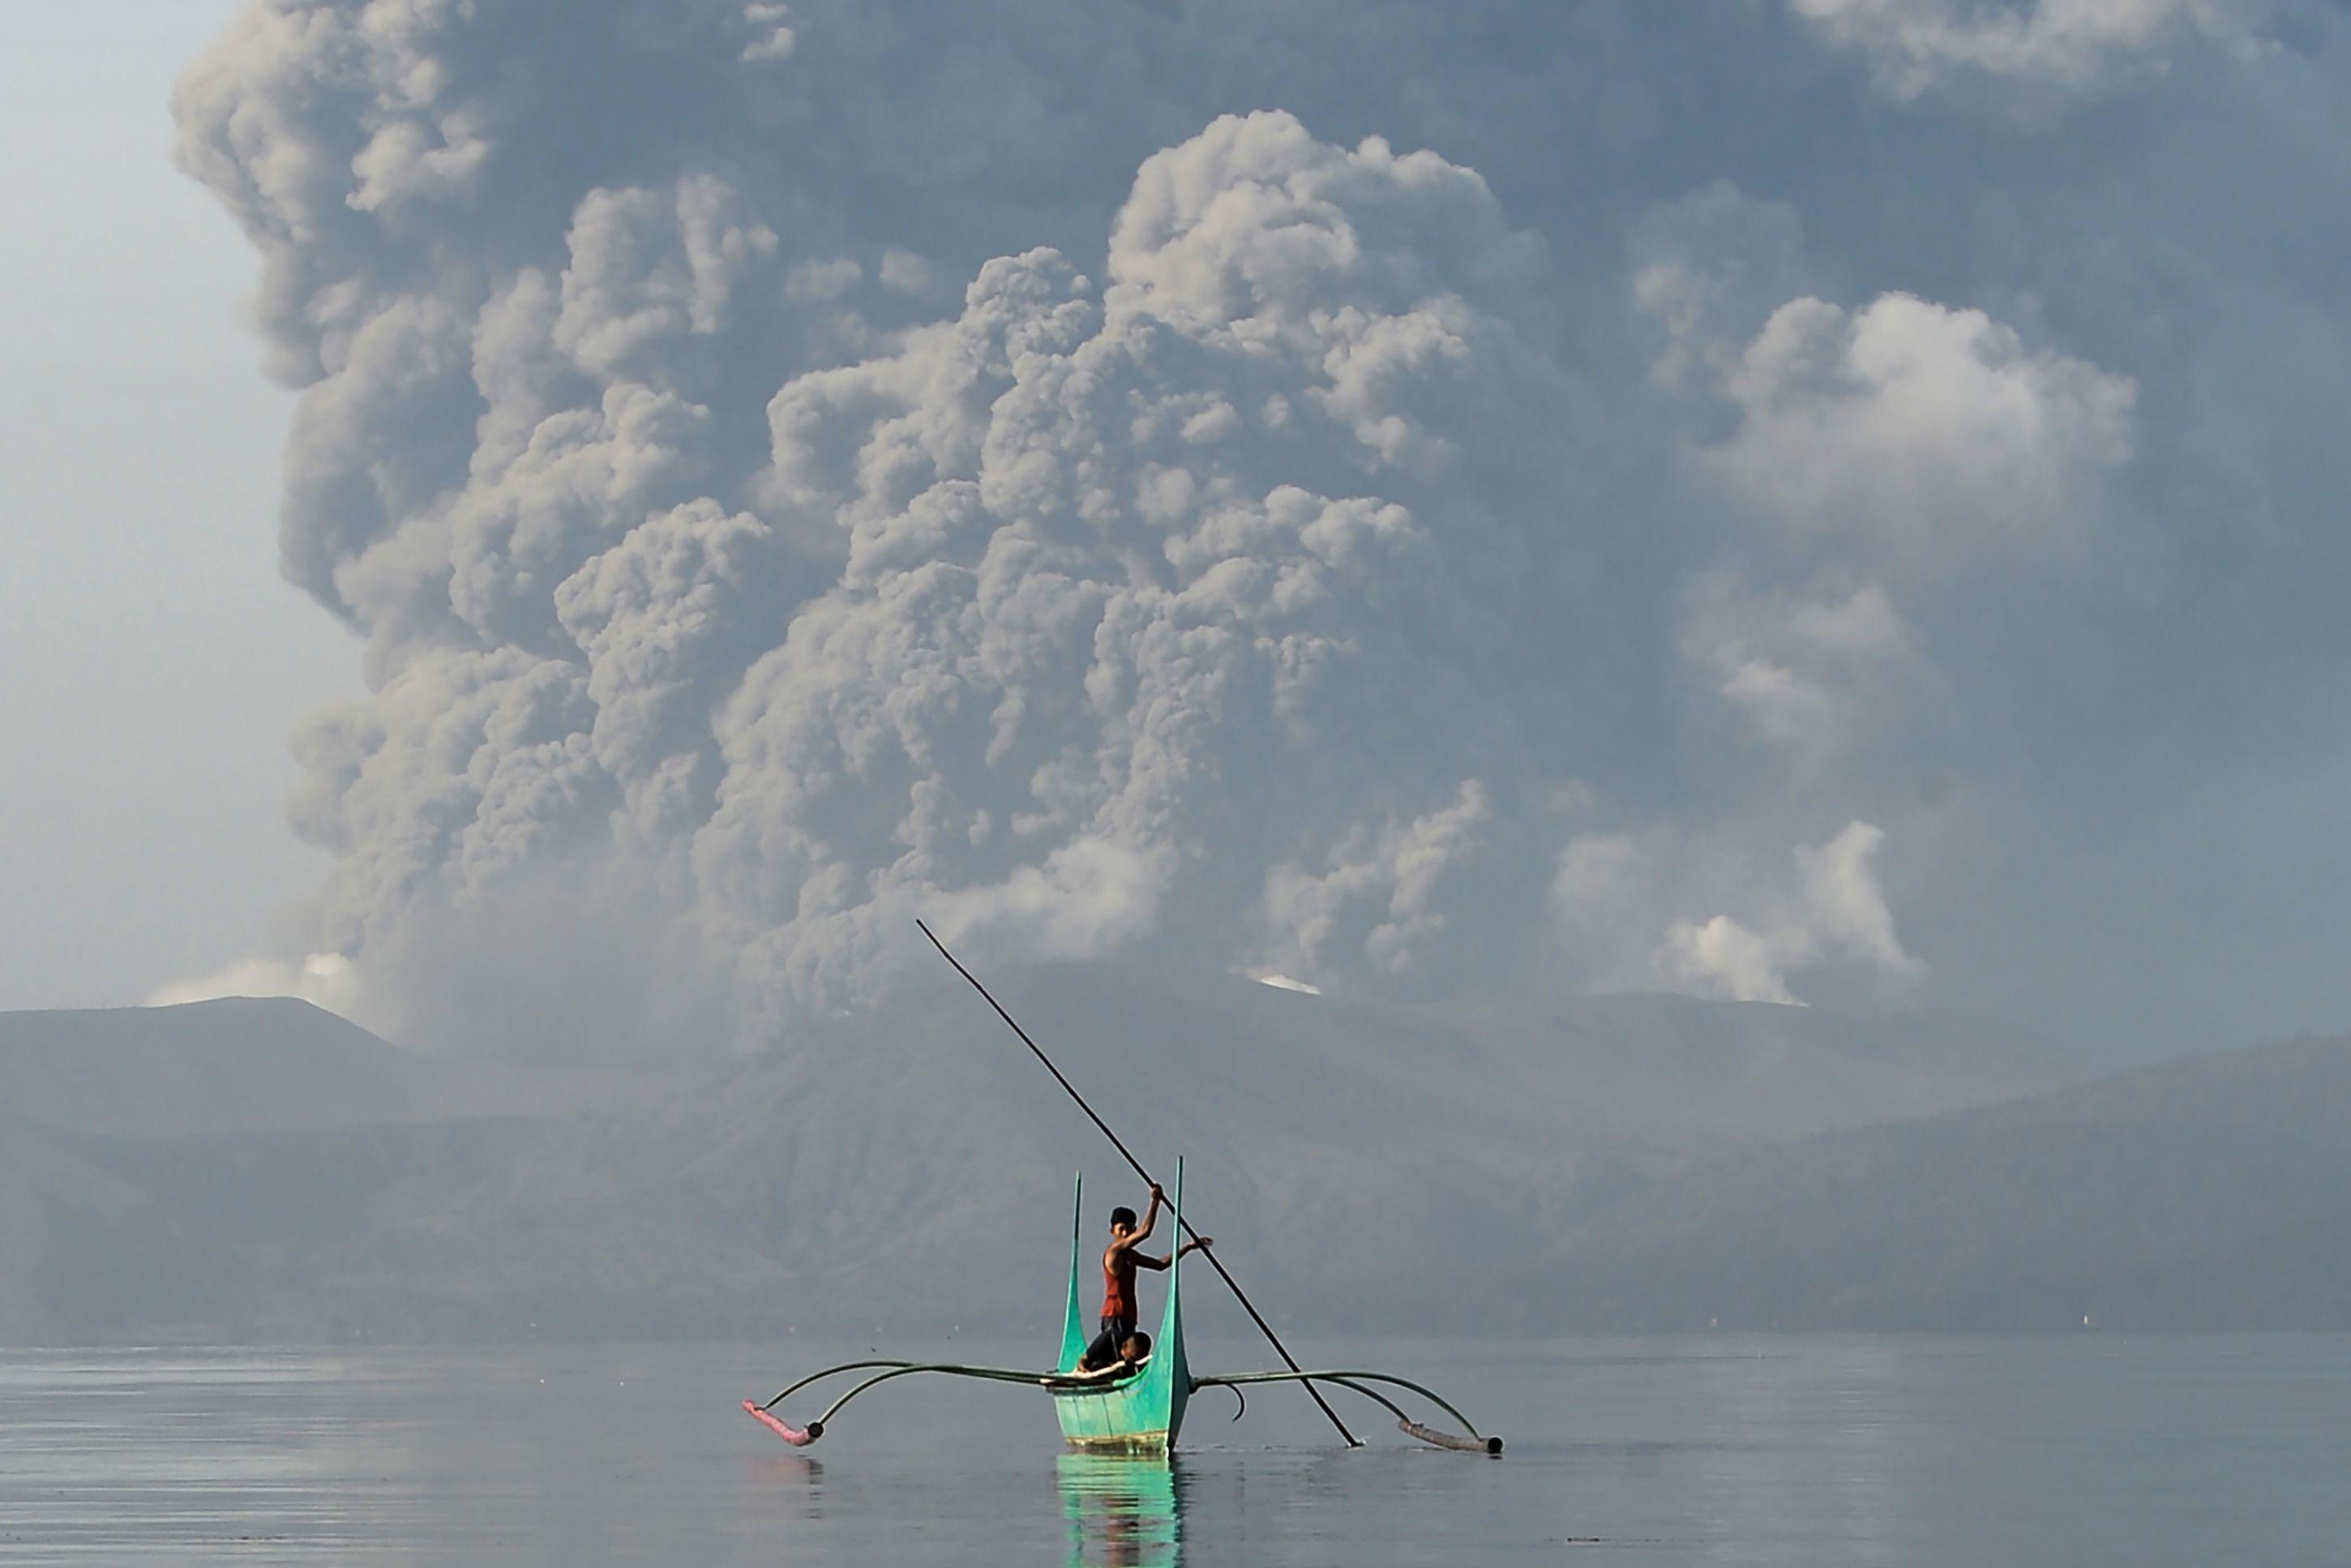 Taal volcano eruption: Philippines alert level raised as thousands flee ash clouds